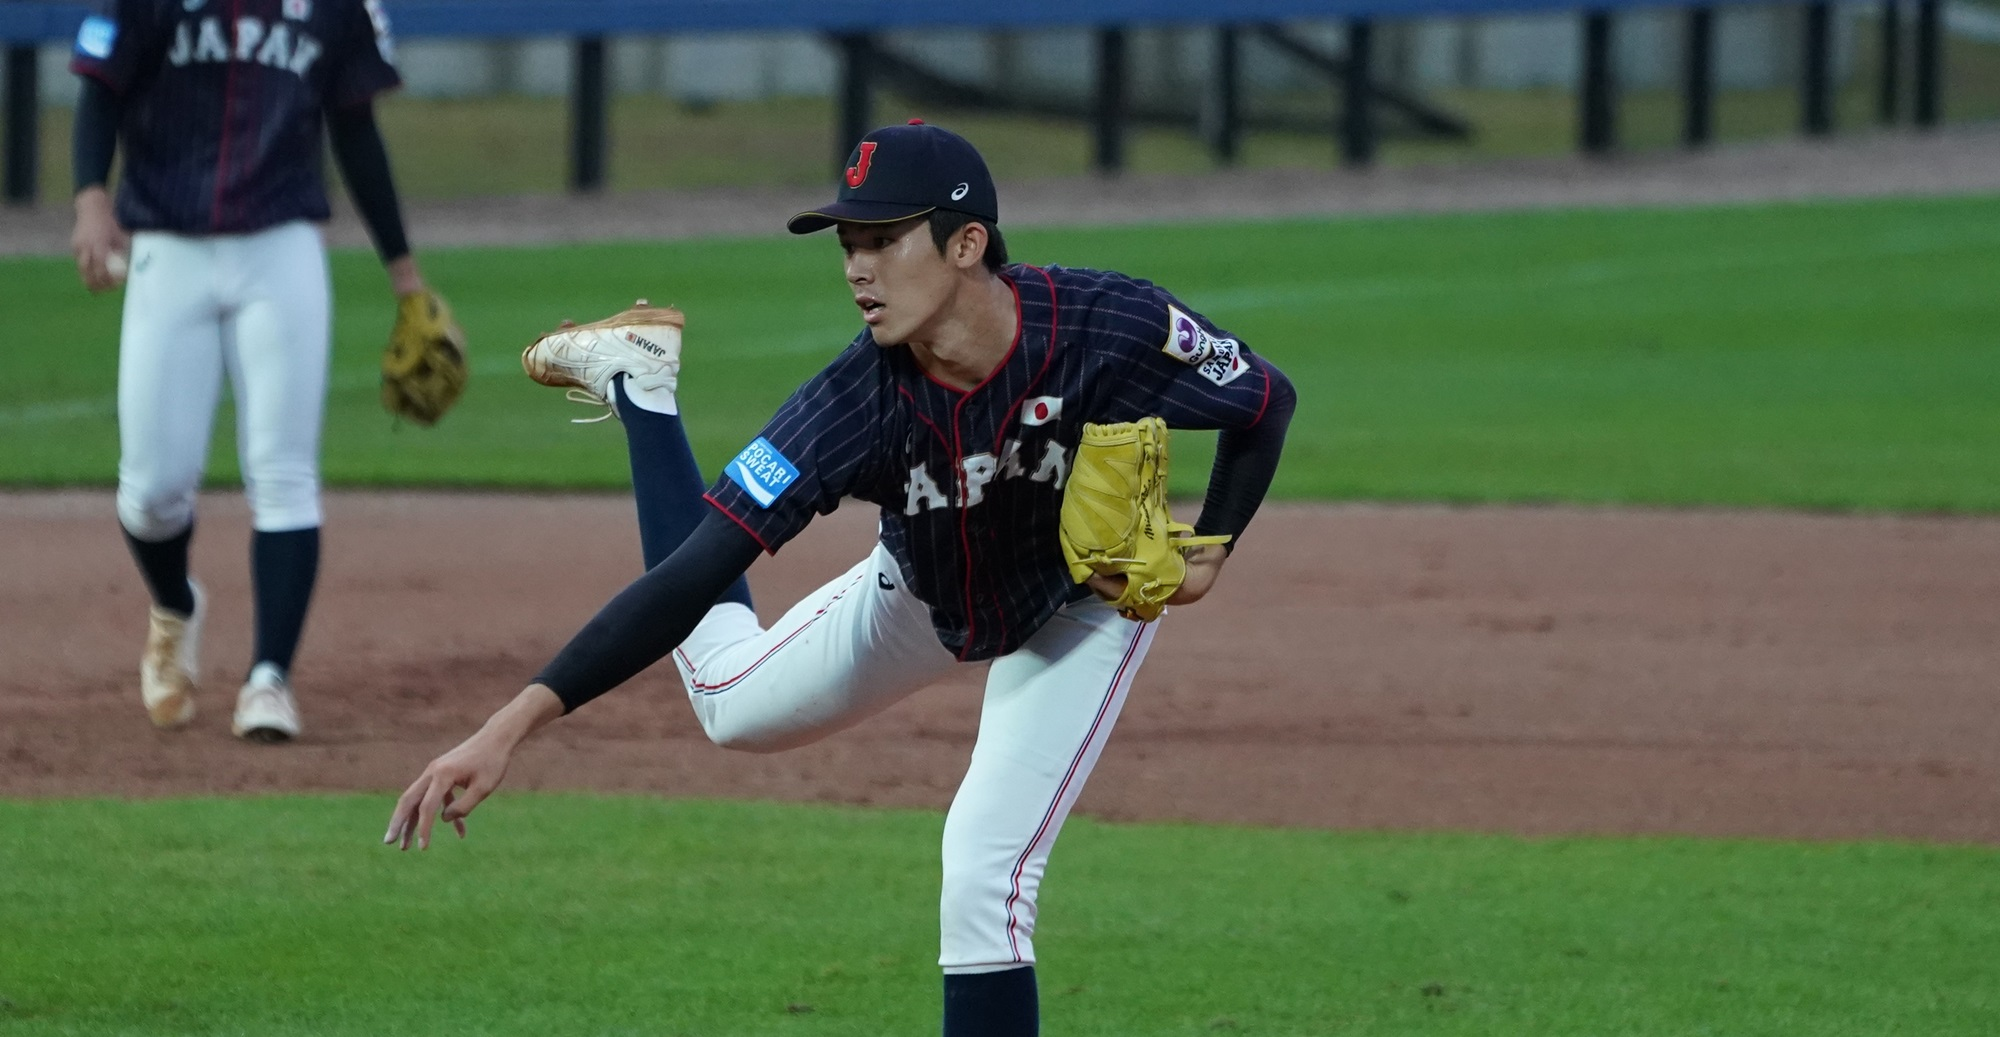 Sasaki impressed with his speed, but his game lasted one inning because of control issues